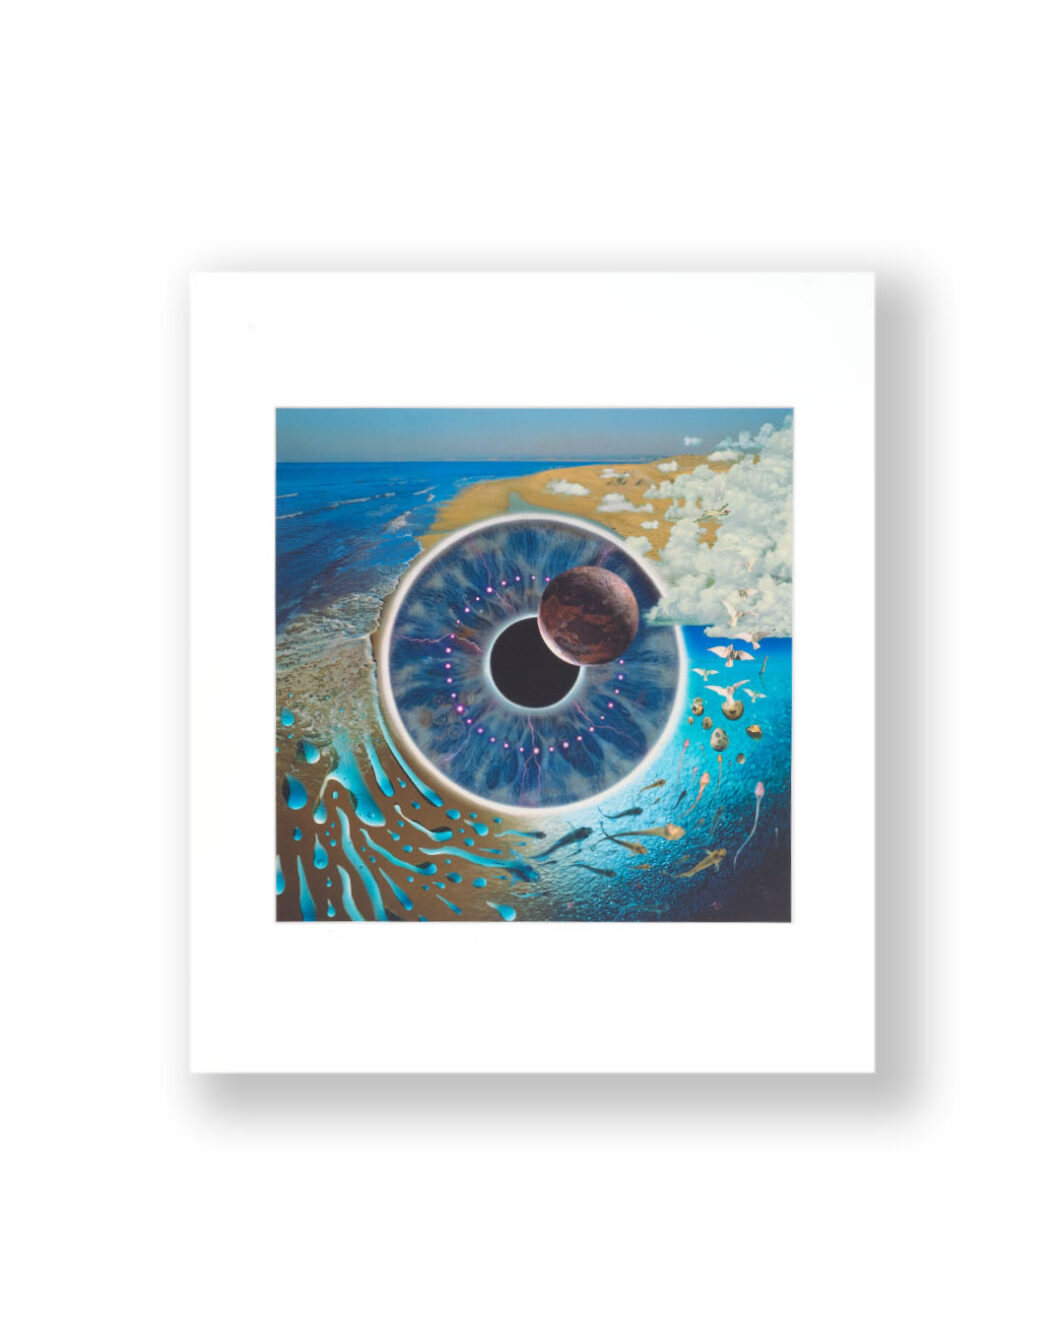 PINK FLOYD PULSE PRINT SIGNED BY ARTIST STORM THORGERSON